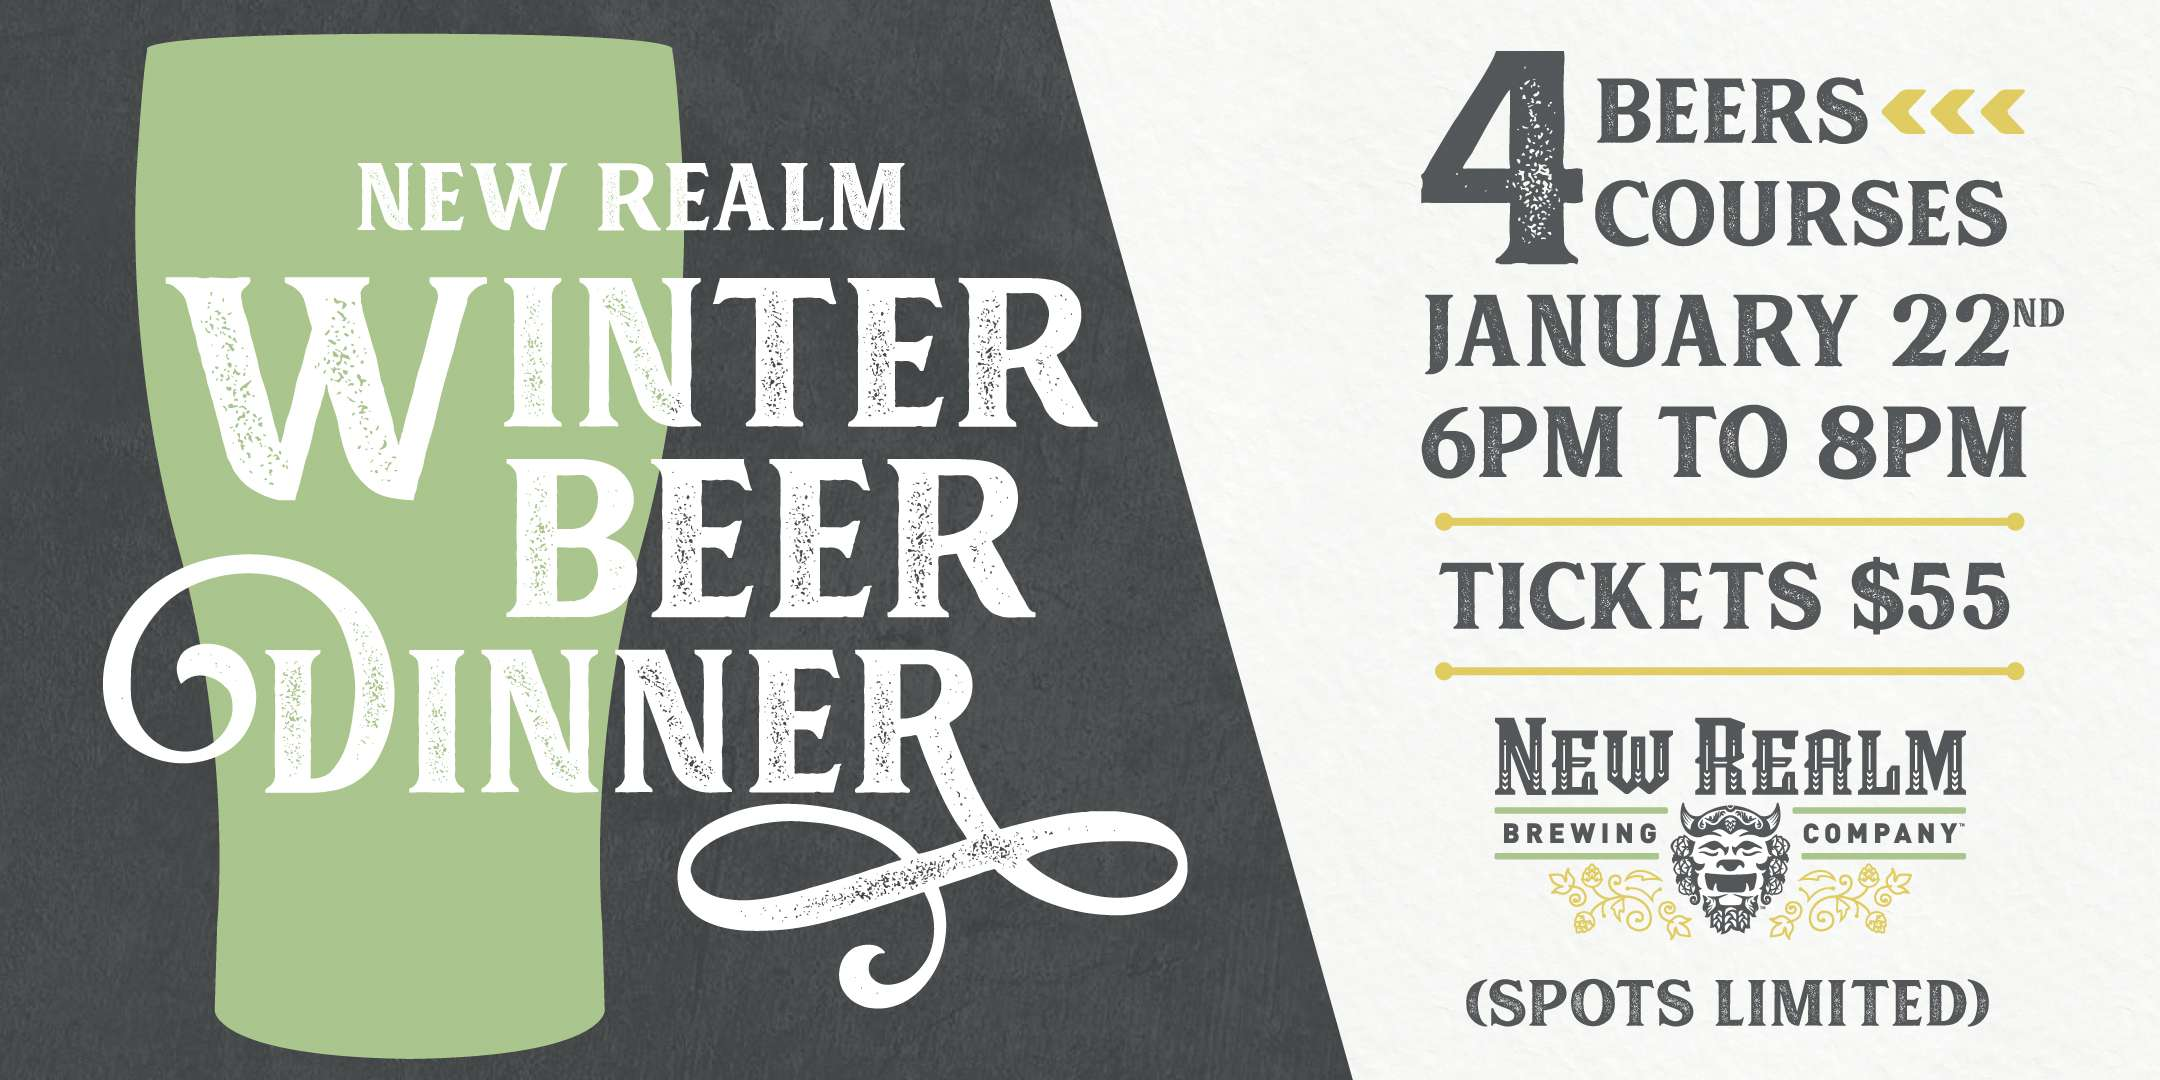 New Realm Beer Dinner Eventbrite 2020 01